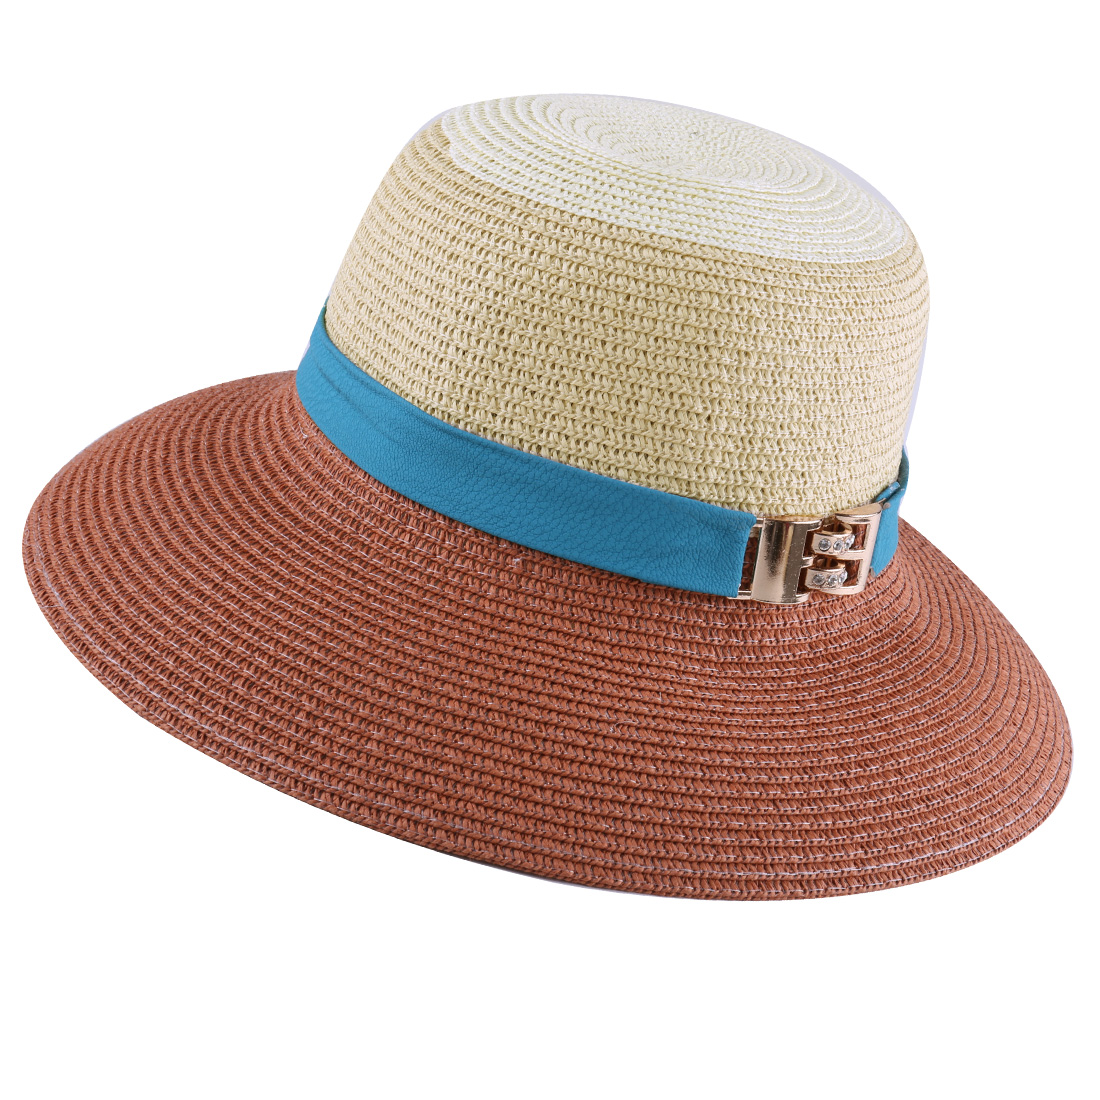 1346# Ladies Wide Brim Leather Strap Decor Woven Straw...